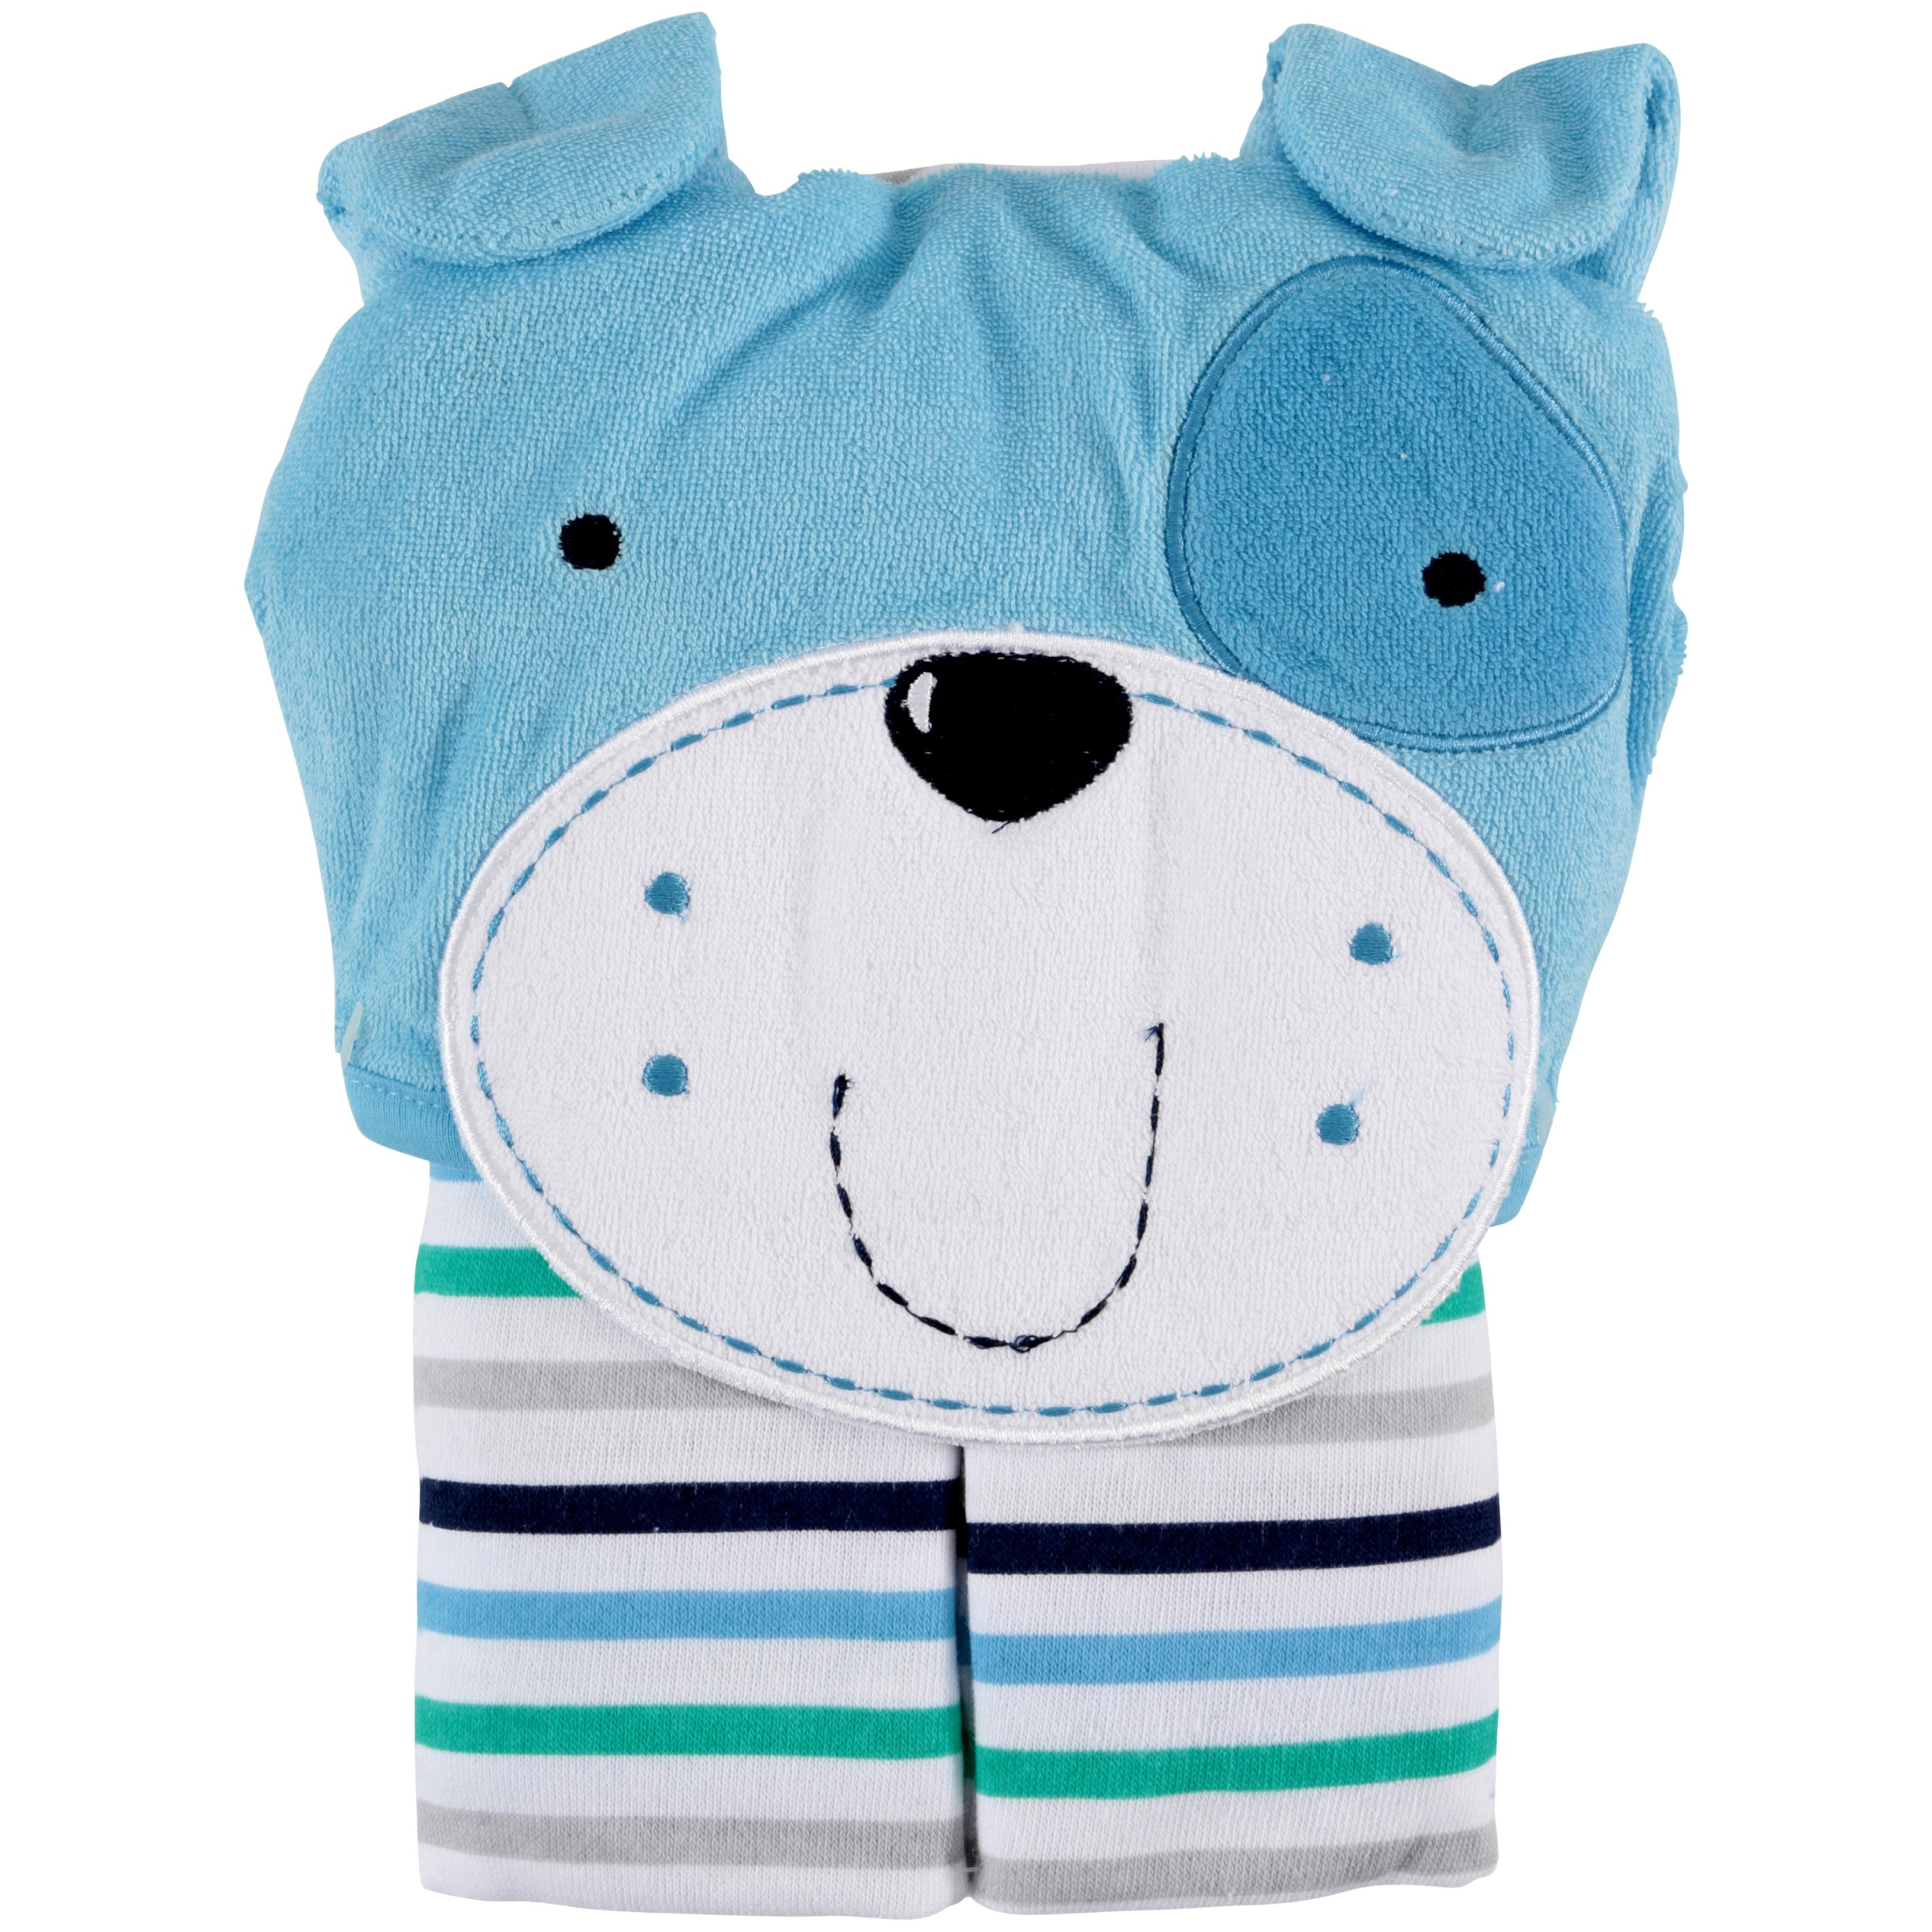 Newborn Baby Boy Terry Hooded Bath Wrap with 3D Applique